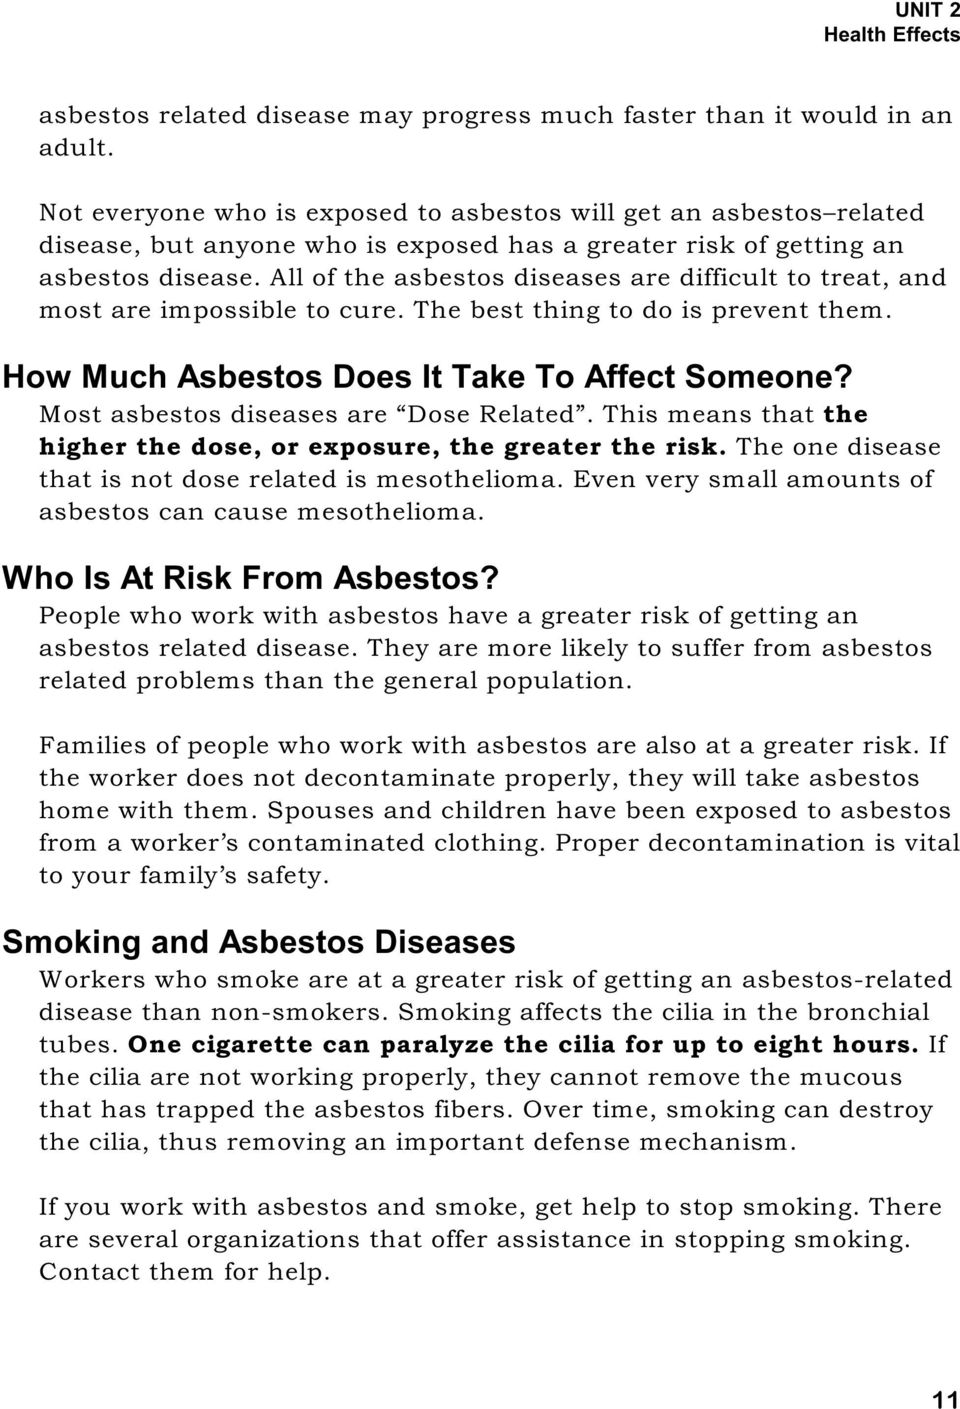 All of the asbestos diseases are difficult to treat, and most are impossible to cure. The best thing to do is prevent them. How Much Asbestos Does It Take To Affect Someone?